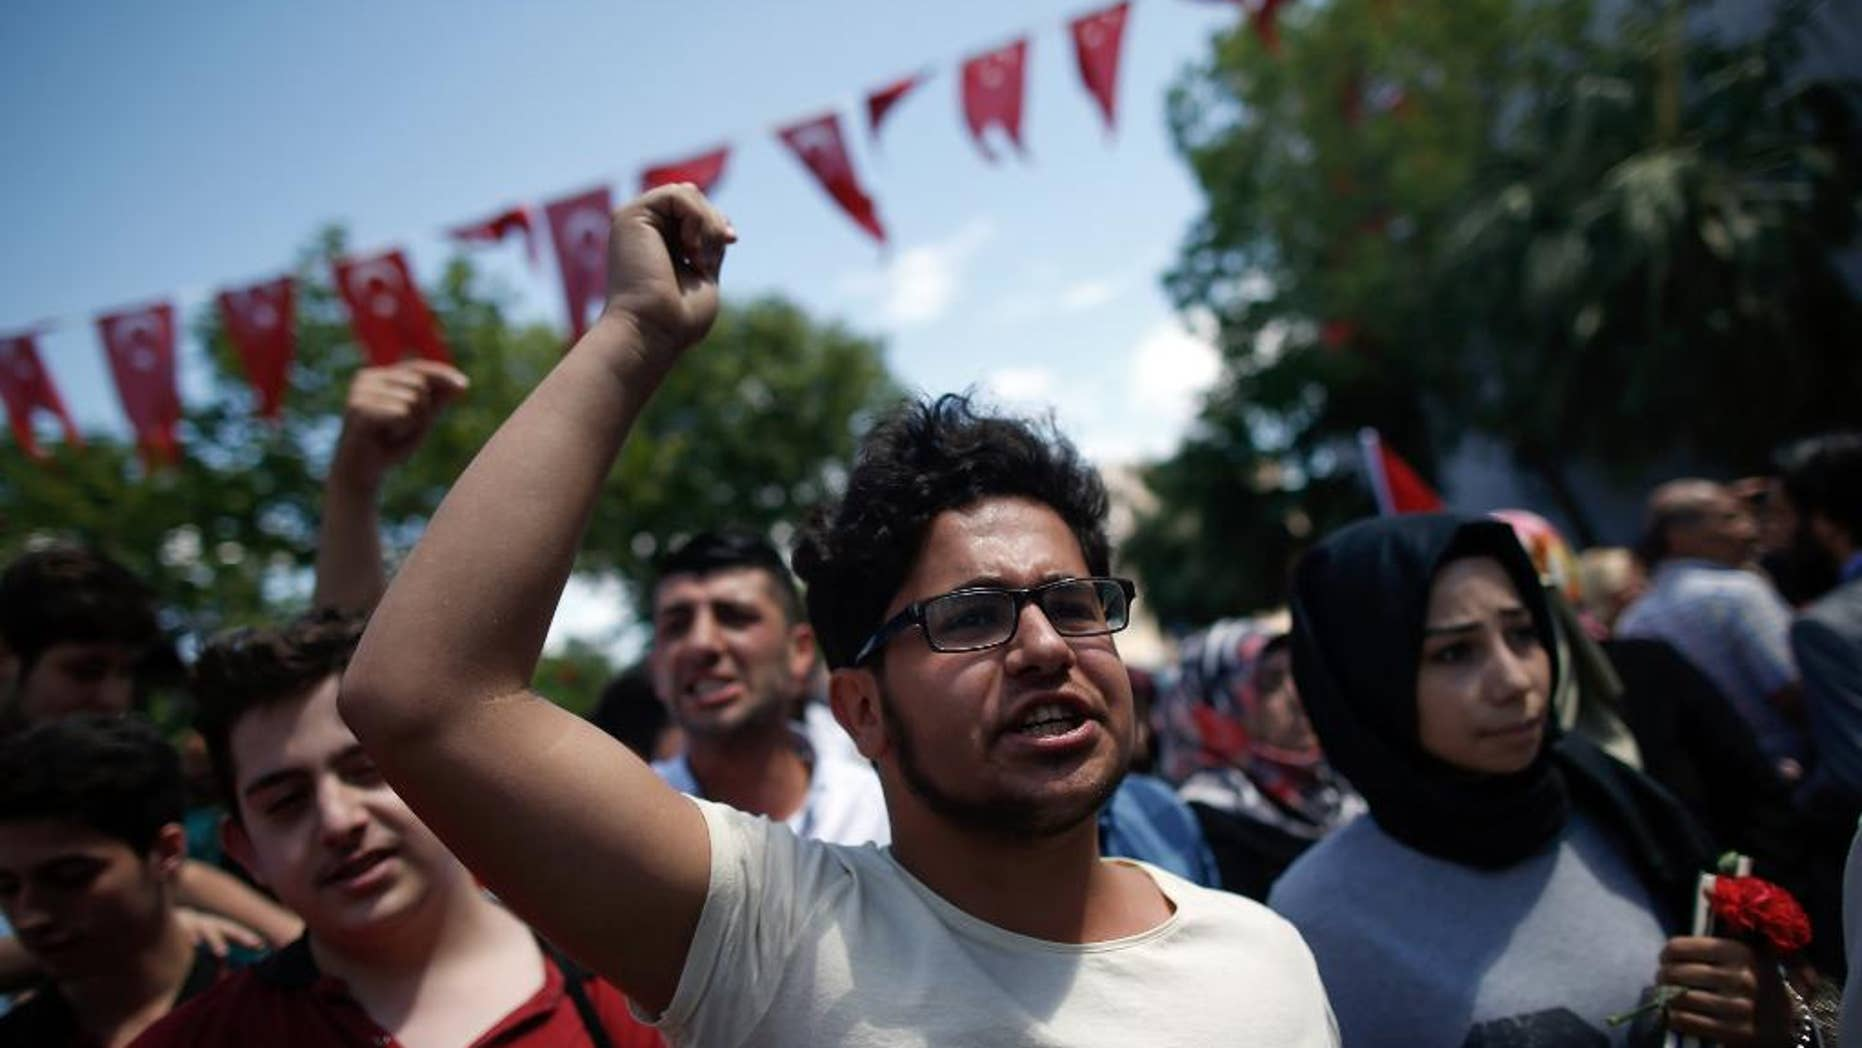 June 8, 2016: People shout to condemn terrorism as they visit the site of Tuesday explosion in Istanbul.